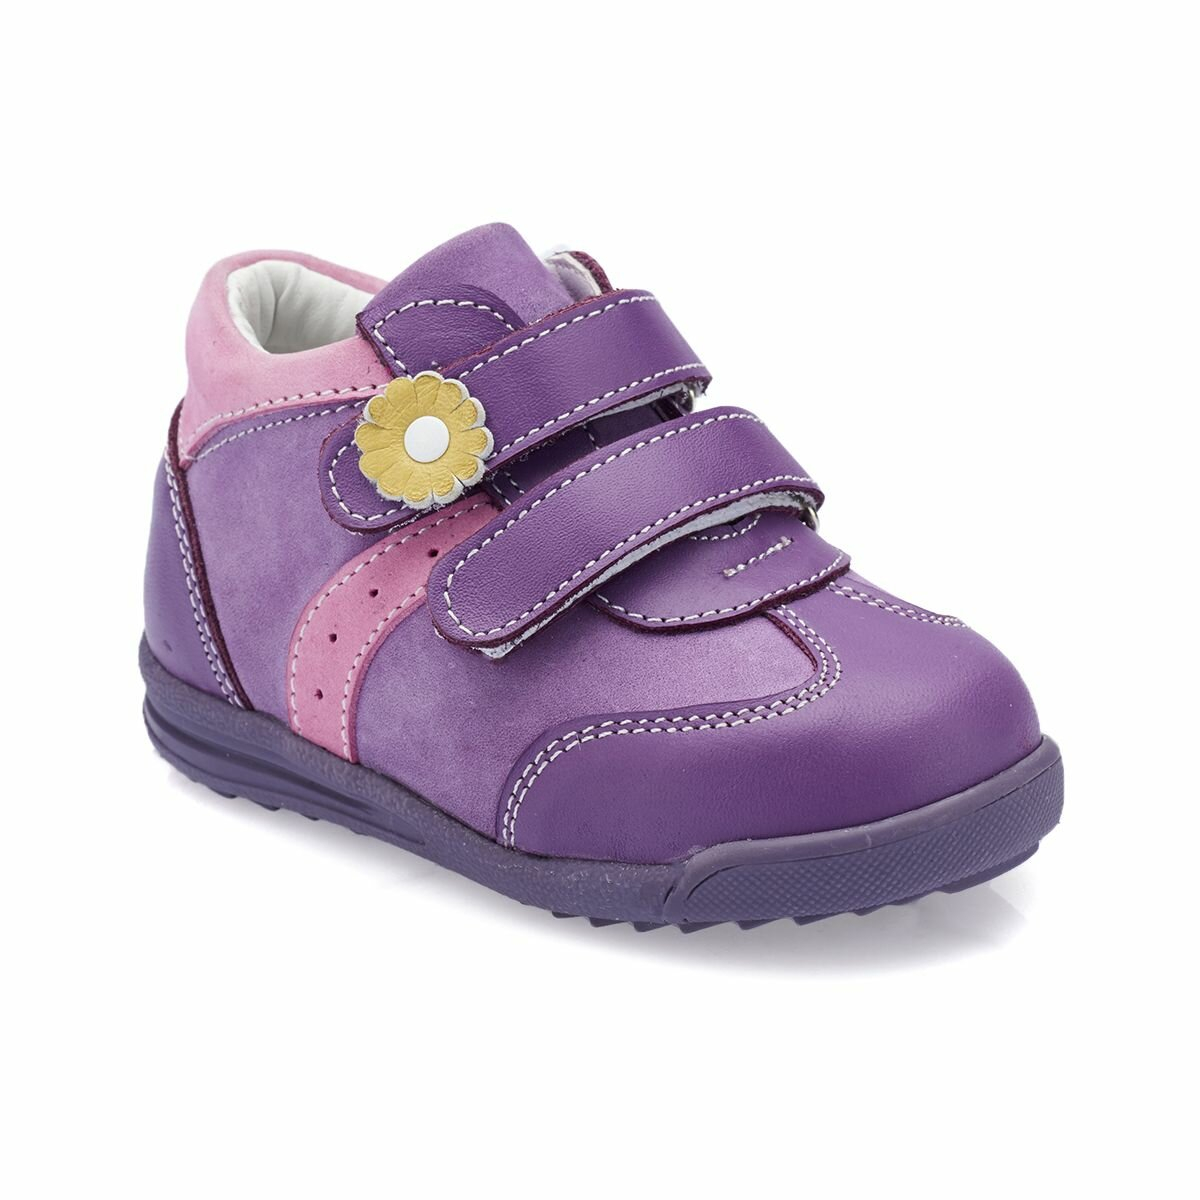 FLO 82. 510899.I Purple Female Child Sneaker Shoes Polaris